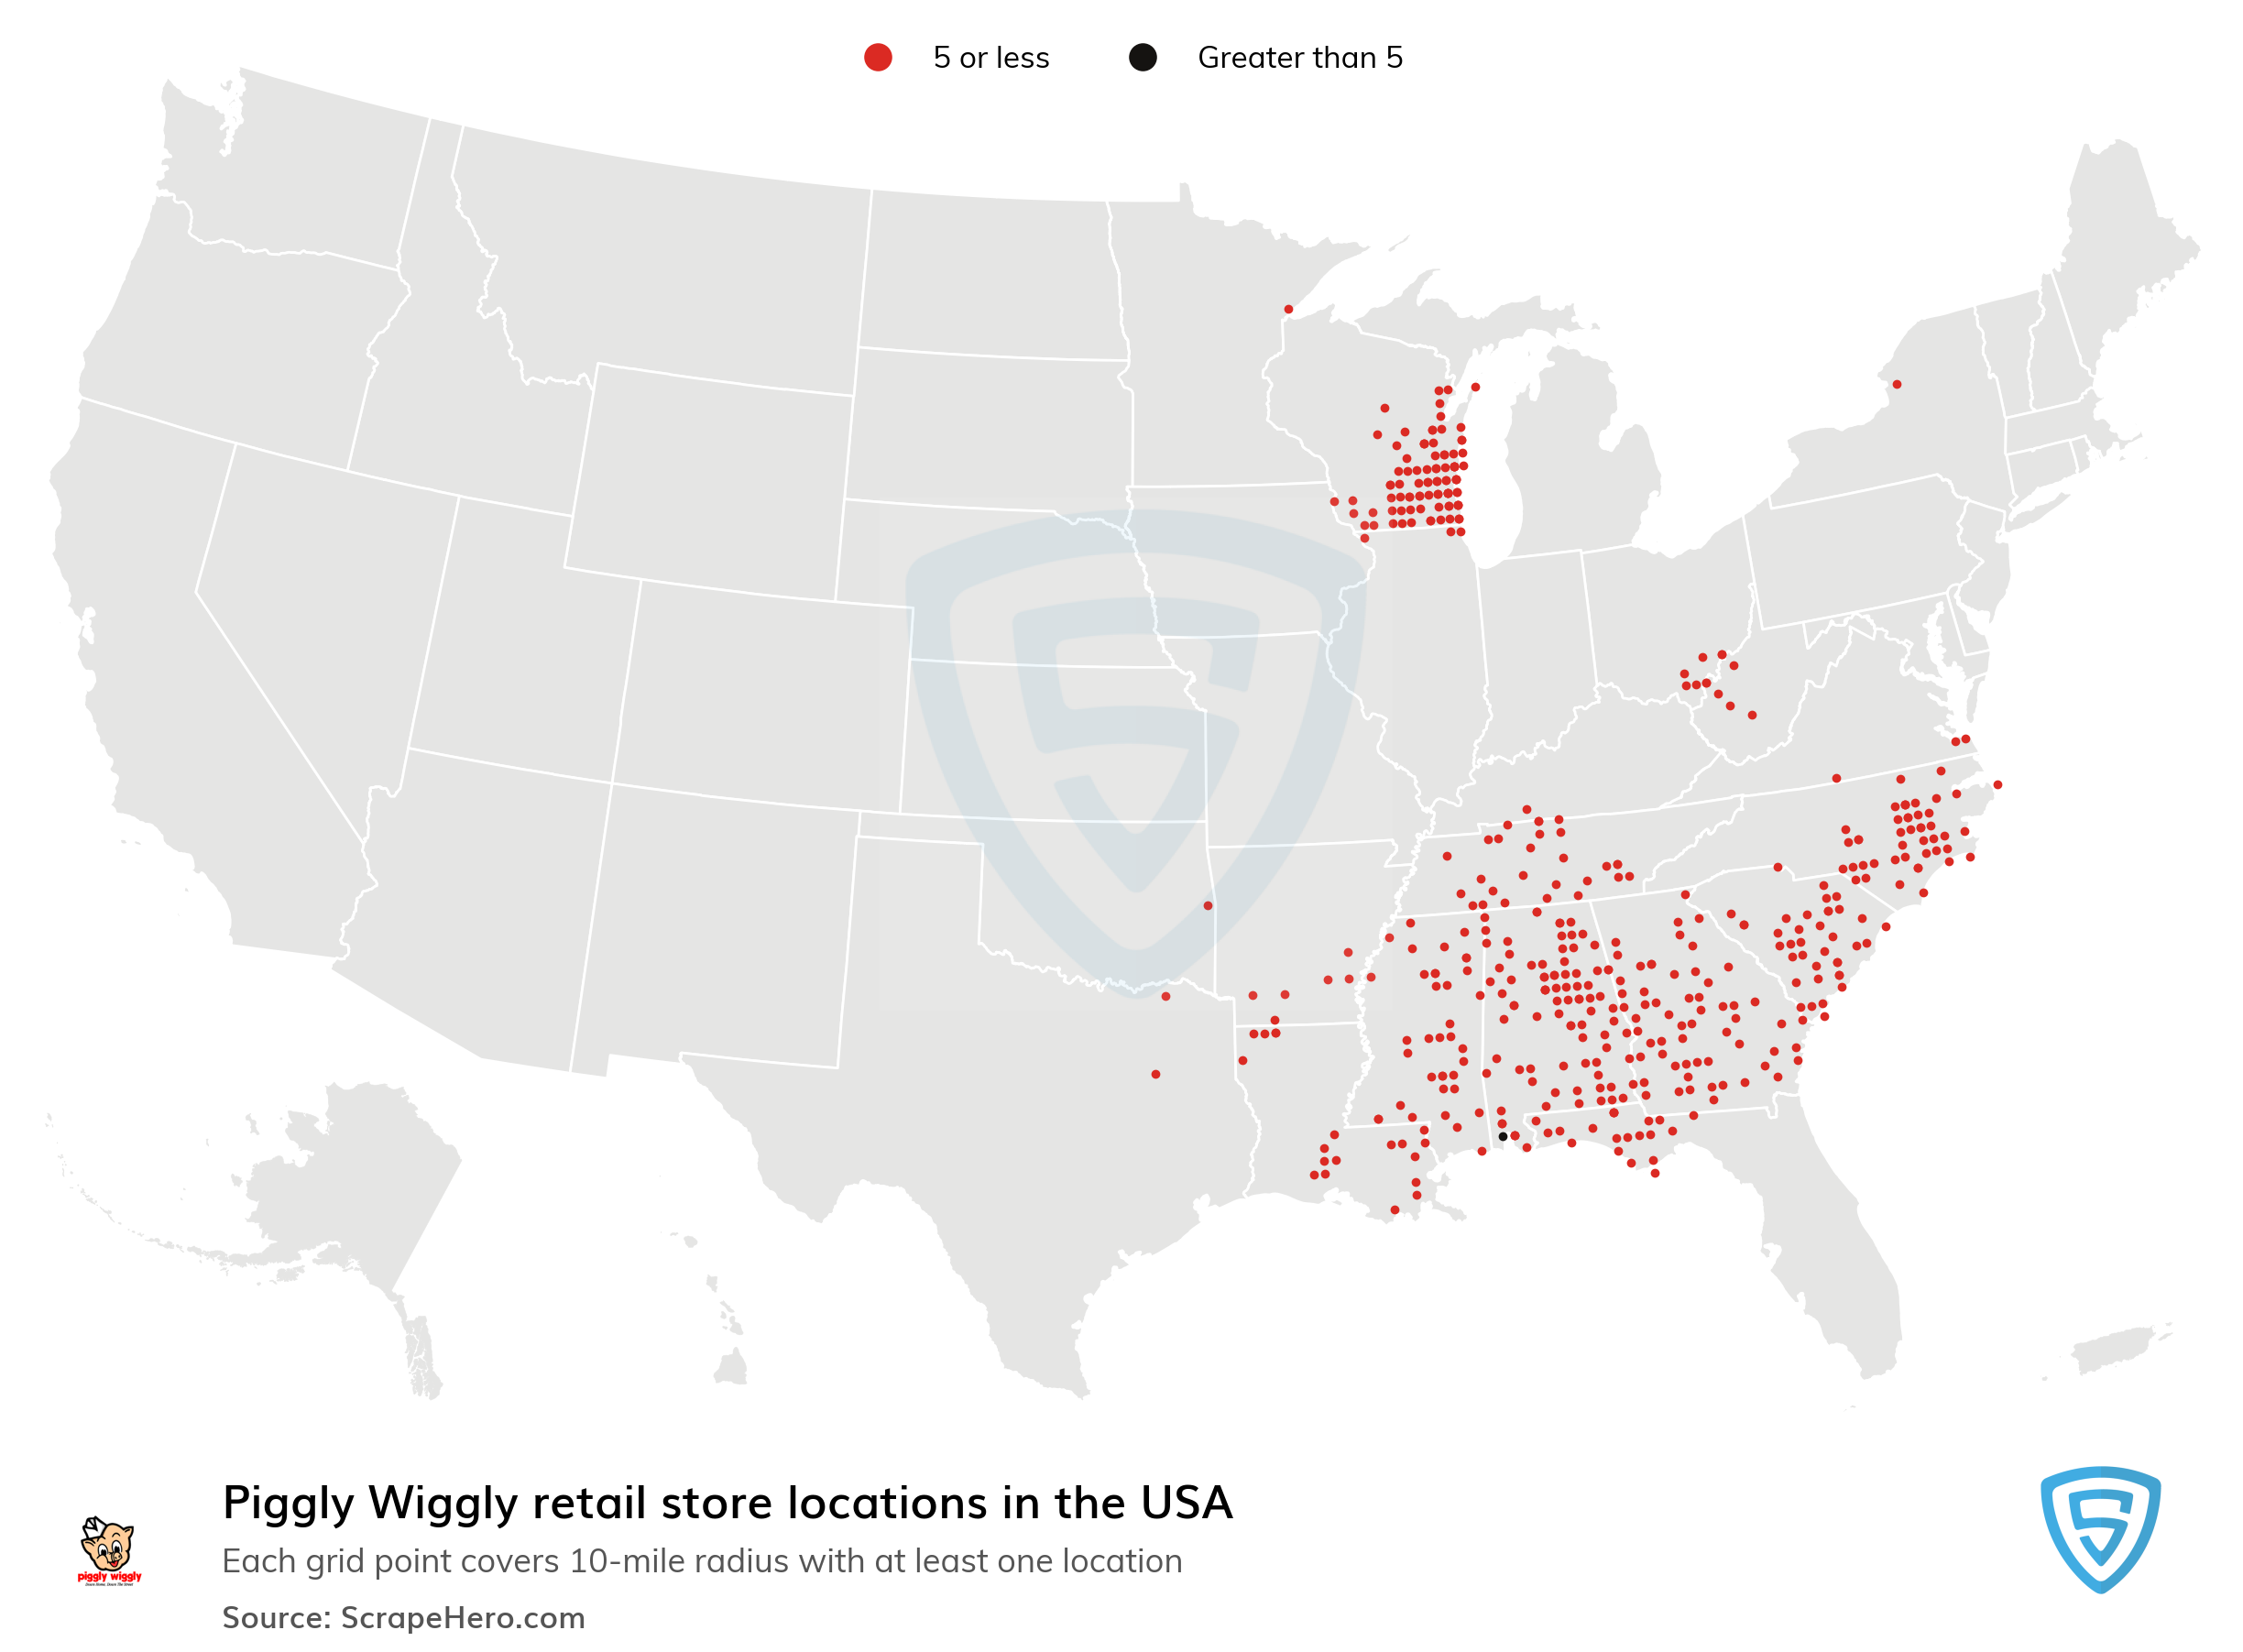 Map of Piggly Wiggly locations in the United States in 2021